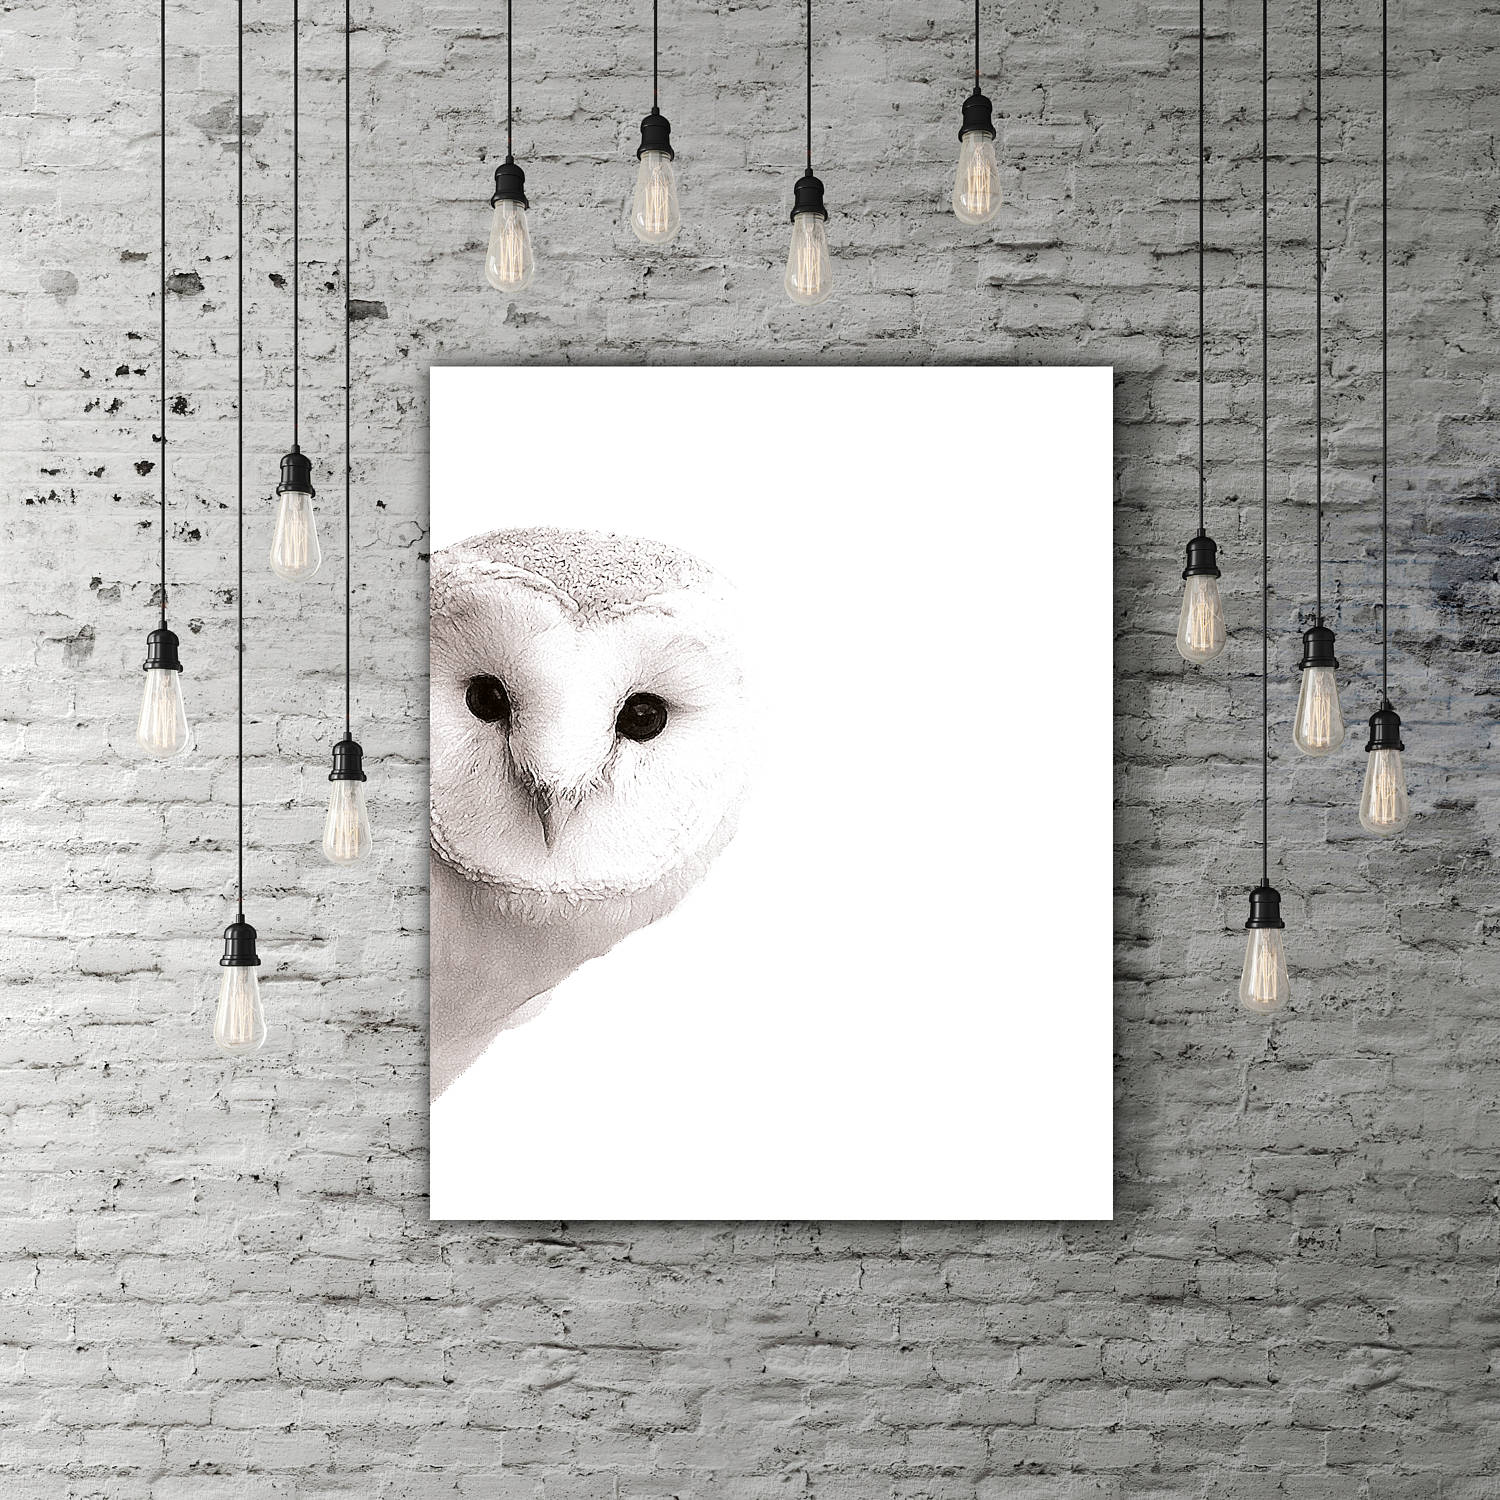 Cute Owl Decor Cute Owl Decor Nursery Woodland Art Bird Print Animal Wall Decor Owl Gift Woodland Printable Bird Art Print Cute Poster Owl Artwork